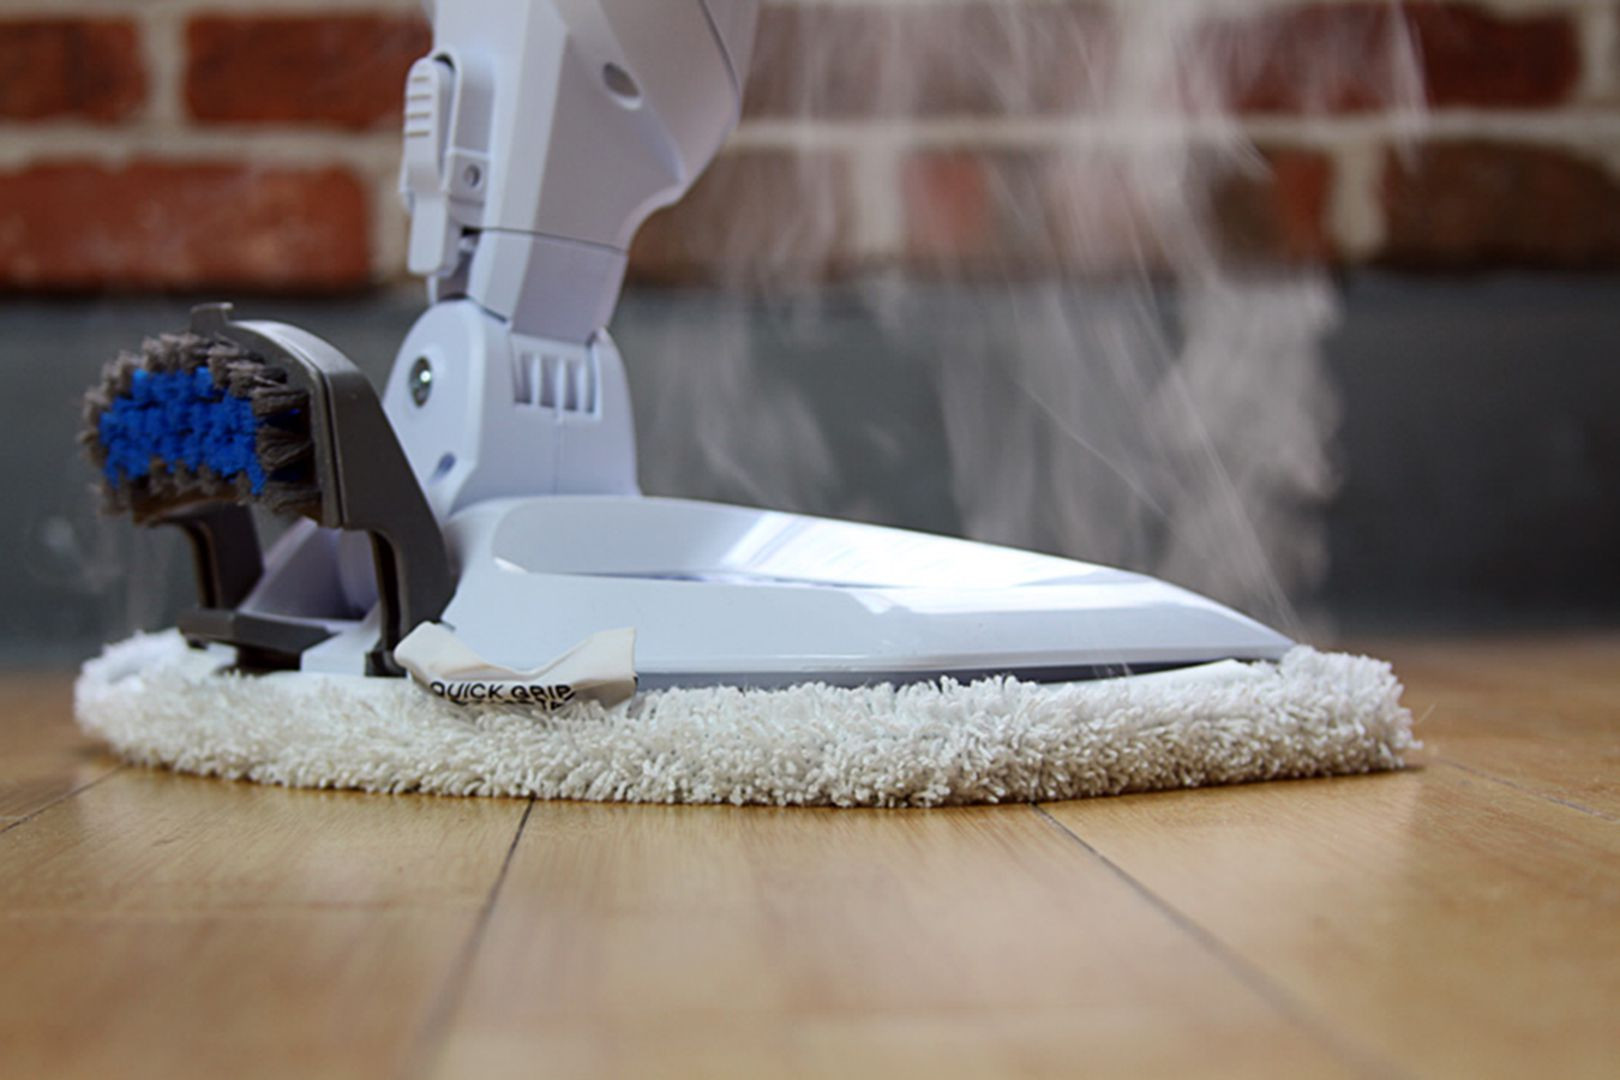 amazon hardwood floor mop of use a steam mop efficiently if you want clean floors regarding steam mop 33683344996 29f26c2761 o 58f116ab3df78cd3fc1c2c16